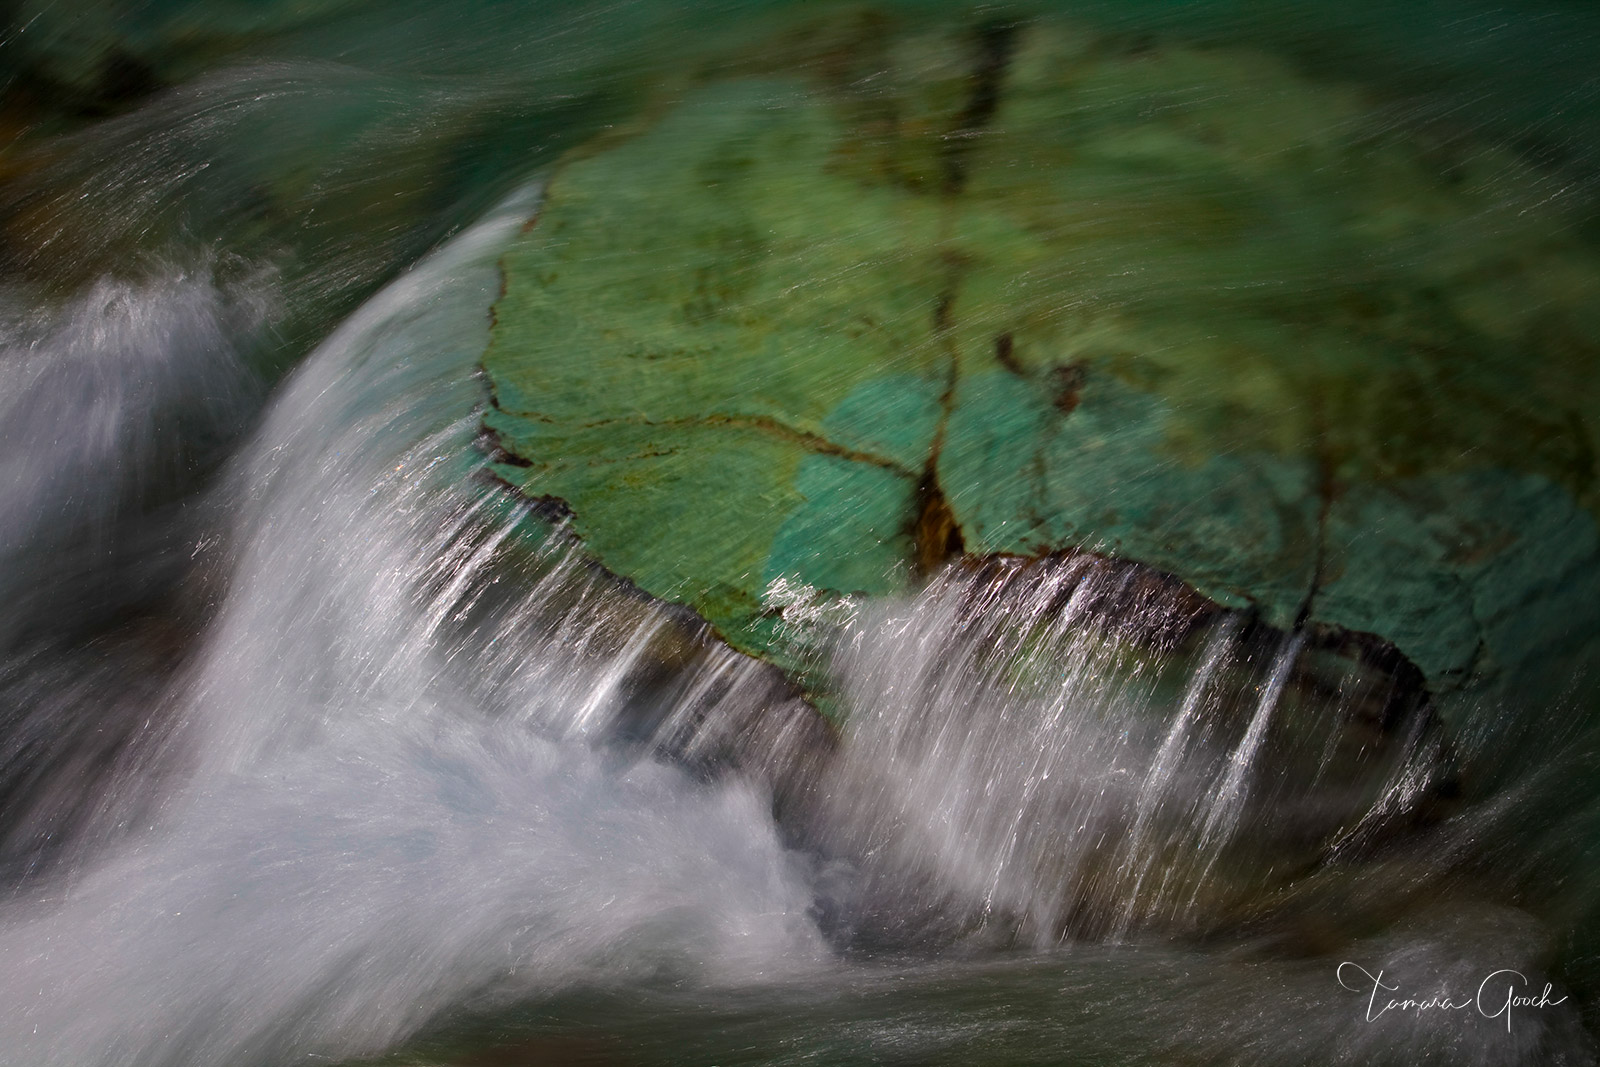 Nature, water, waterfall, cascade, rushing, tranquility, calm, peace, photo, photos, photograph, photographs, photography, image, Montana, images, picture, pictures, prints, purchase, buy, for sale, f, photo